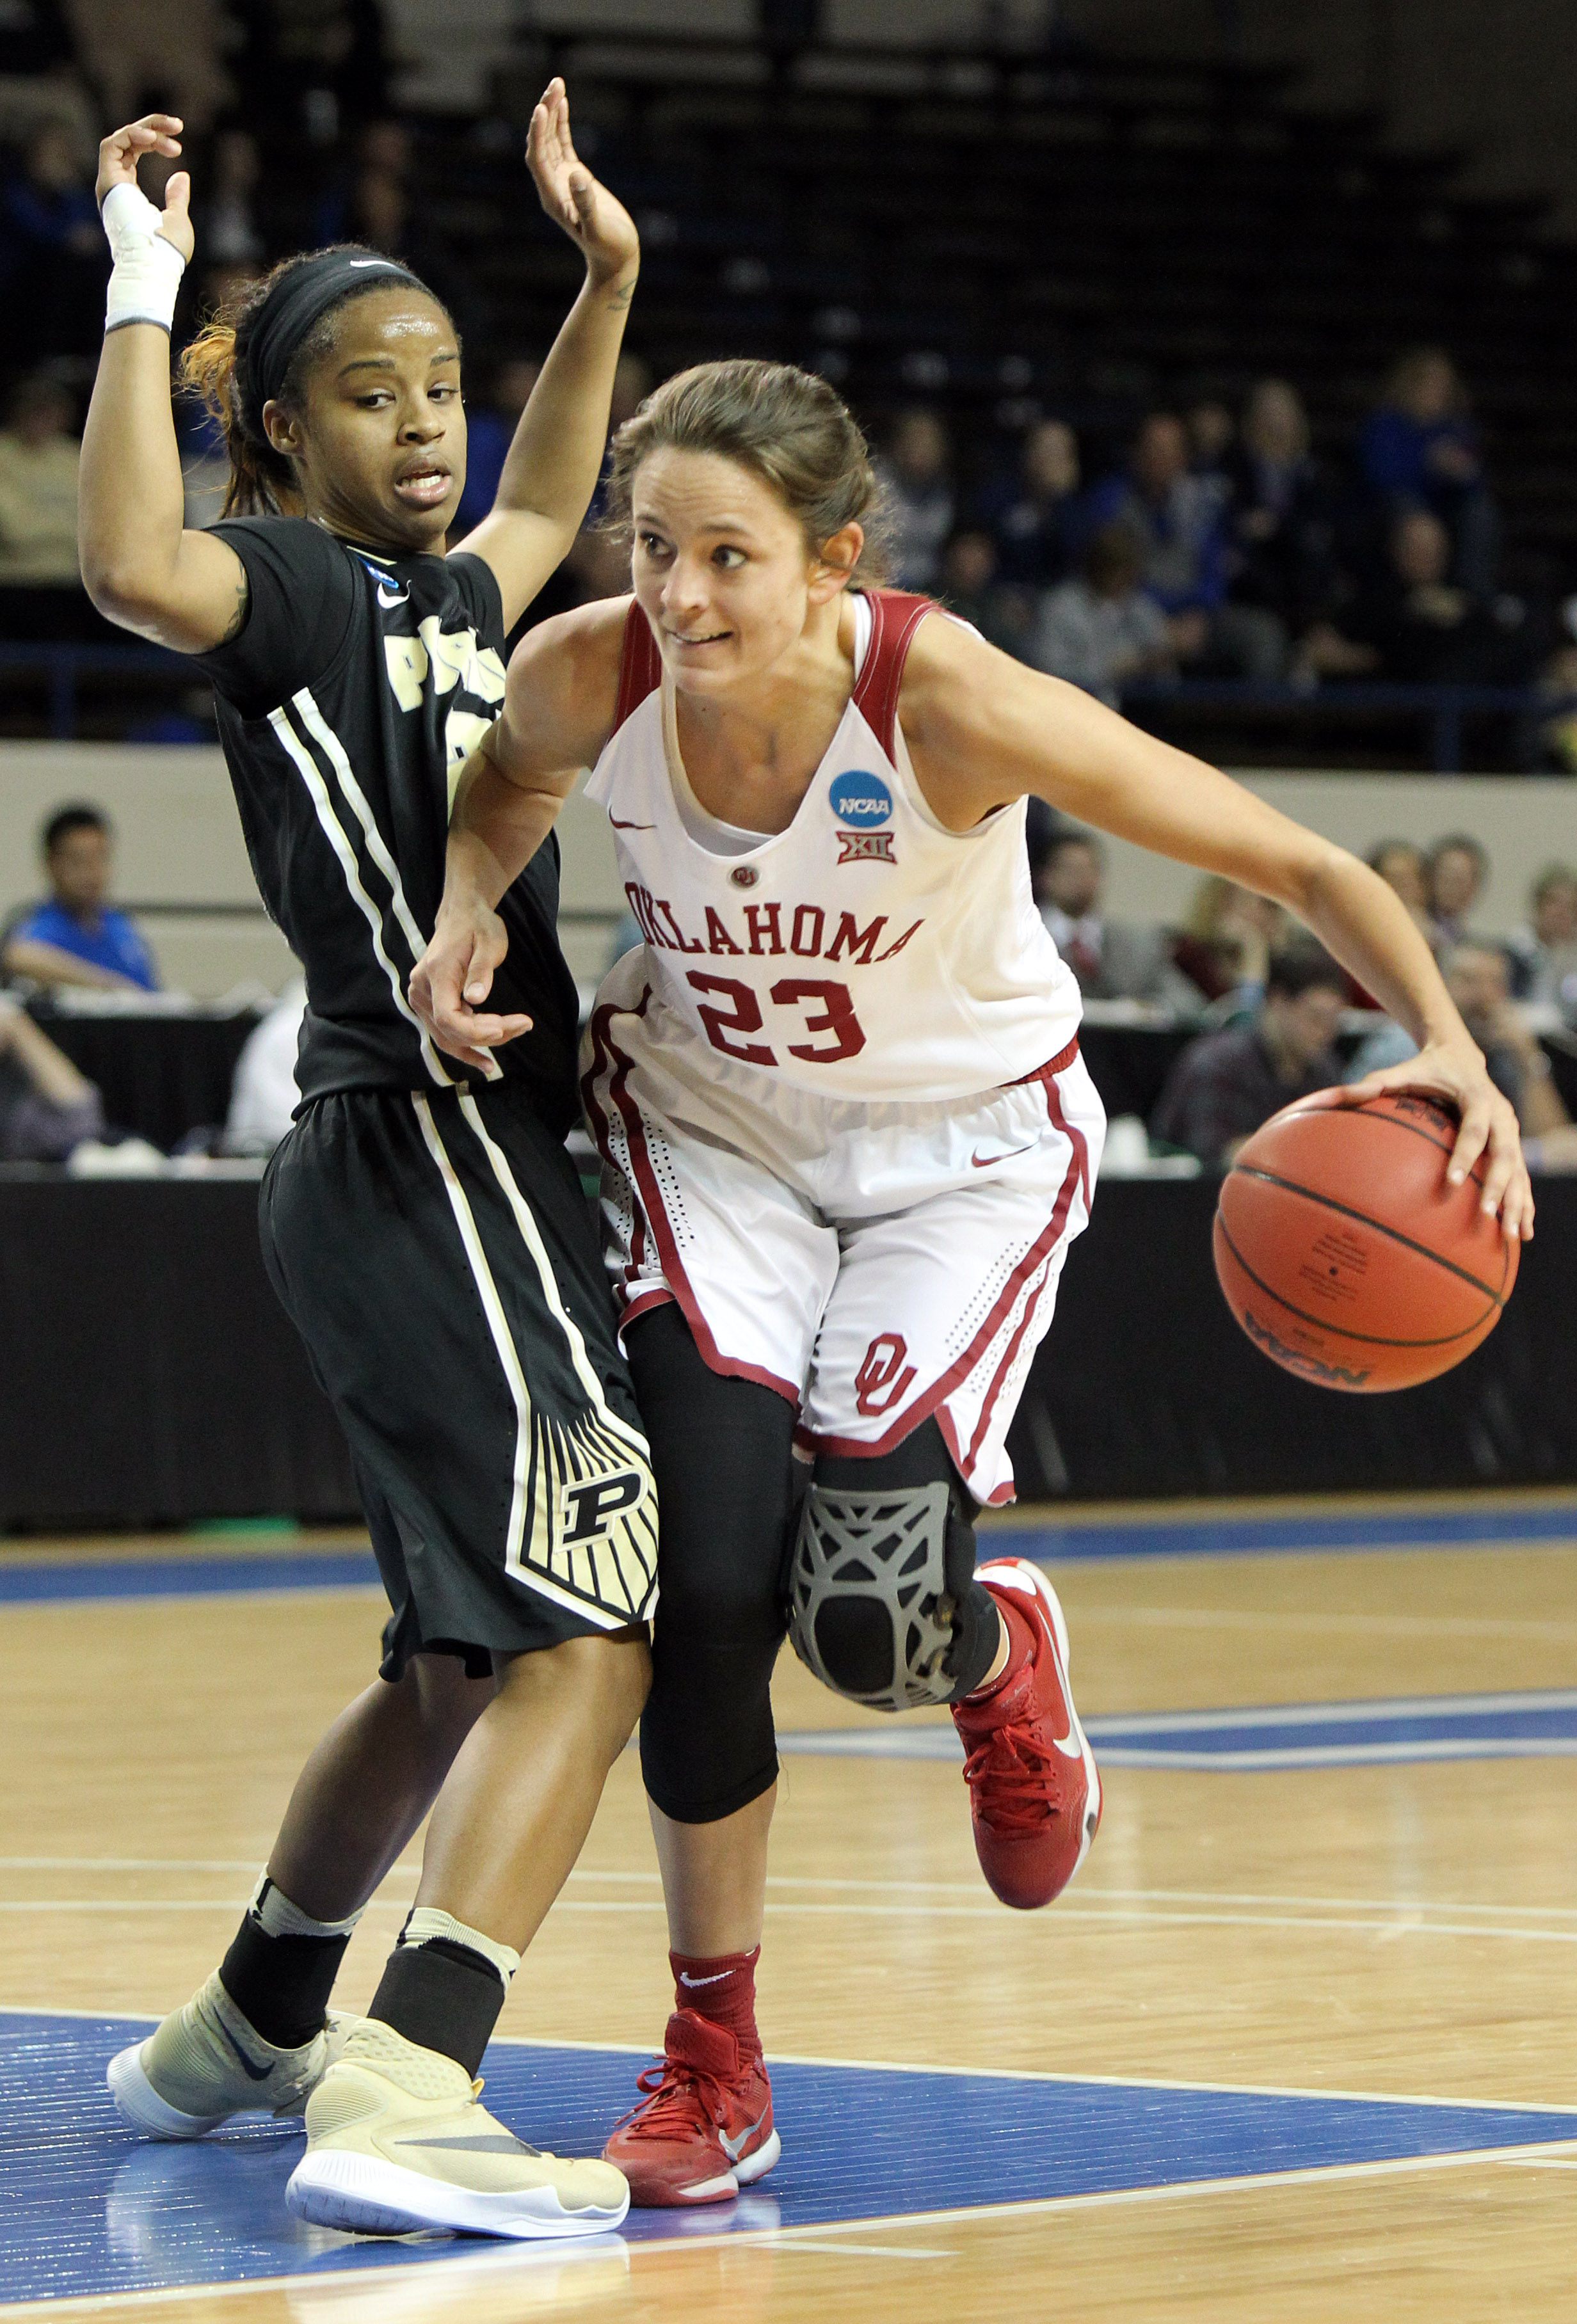 Oklahoma's Maddie Manning (23) looks for an opening on Purdue's Abby Abel during a first-round women's college basketball game in the NCAA Tournament in Lexington, Ky., Saturday, March 19, 2016. (AP Photo/James Crisp)